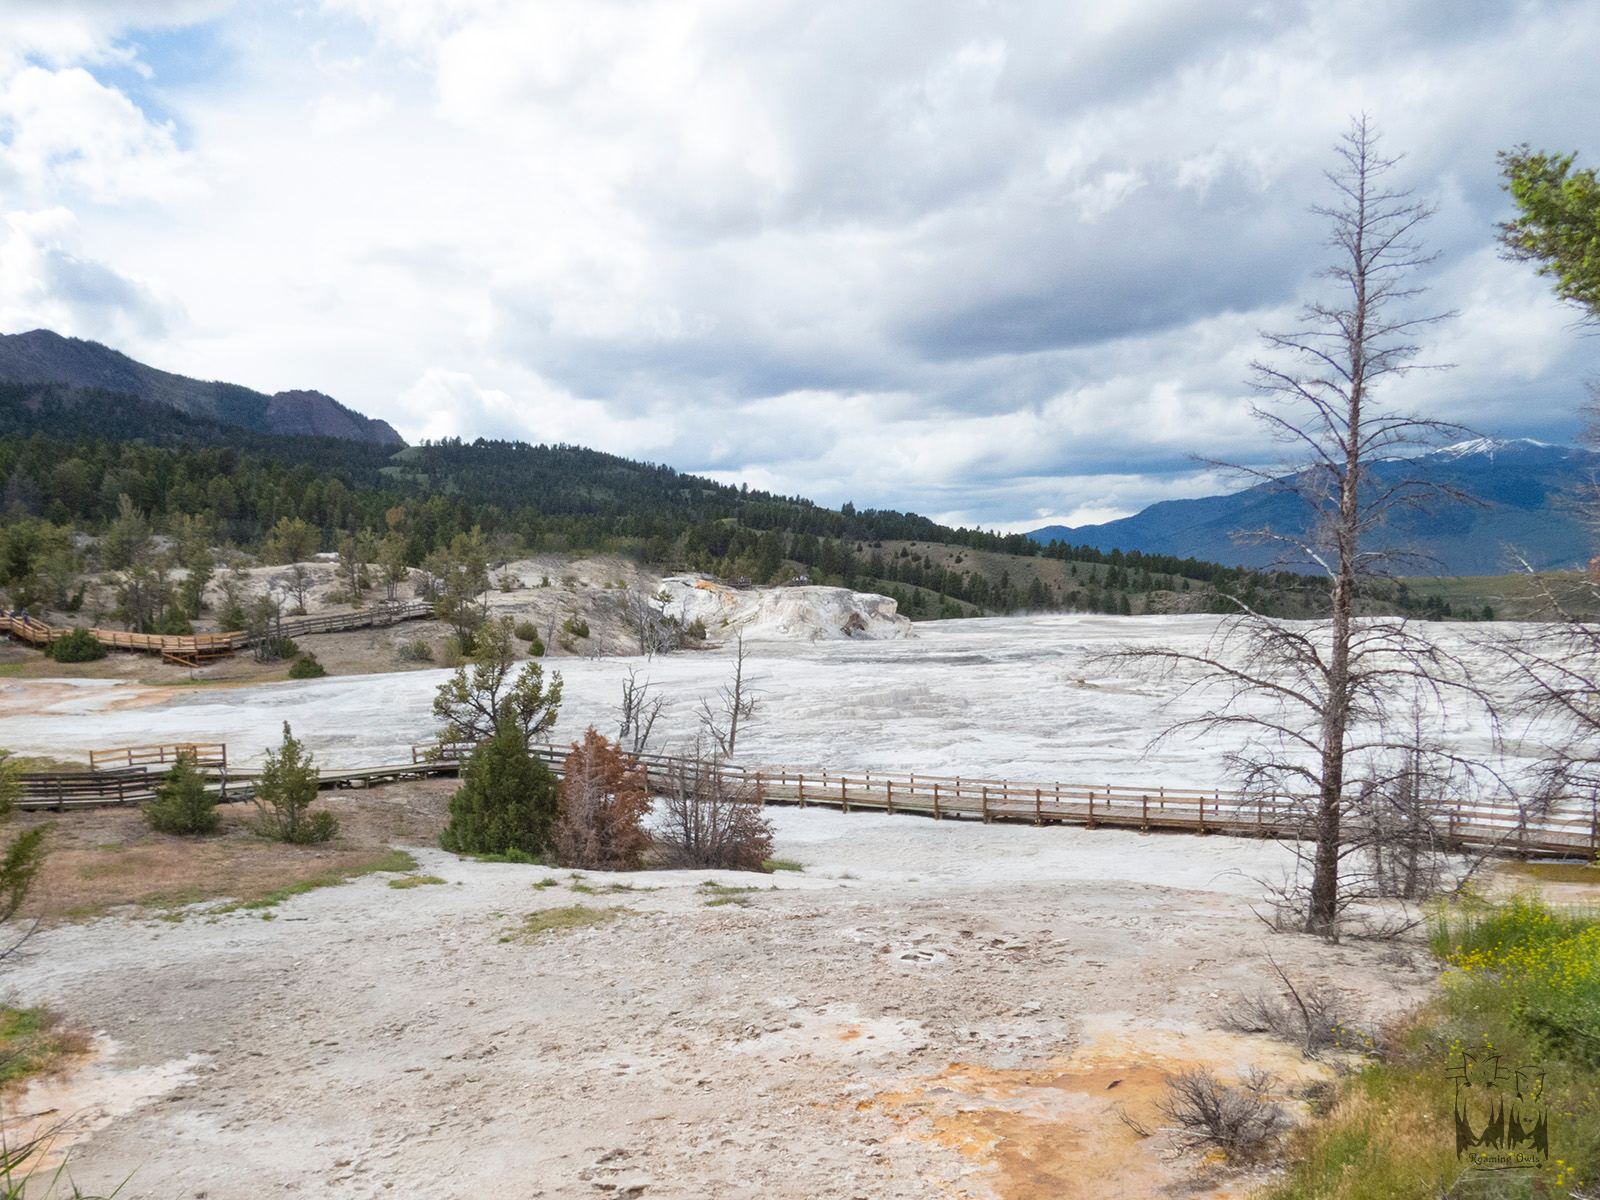 Yellowstone national park, white parched soil , Hot springs